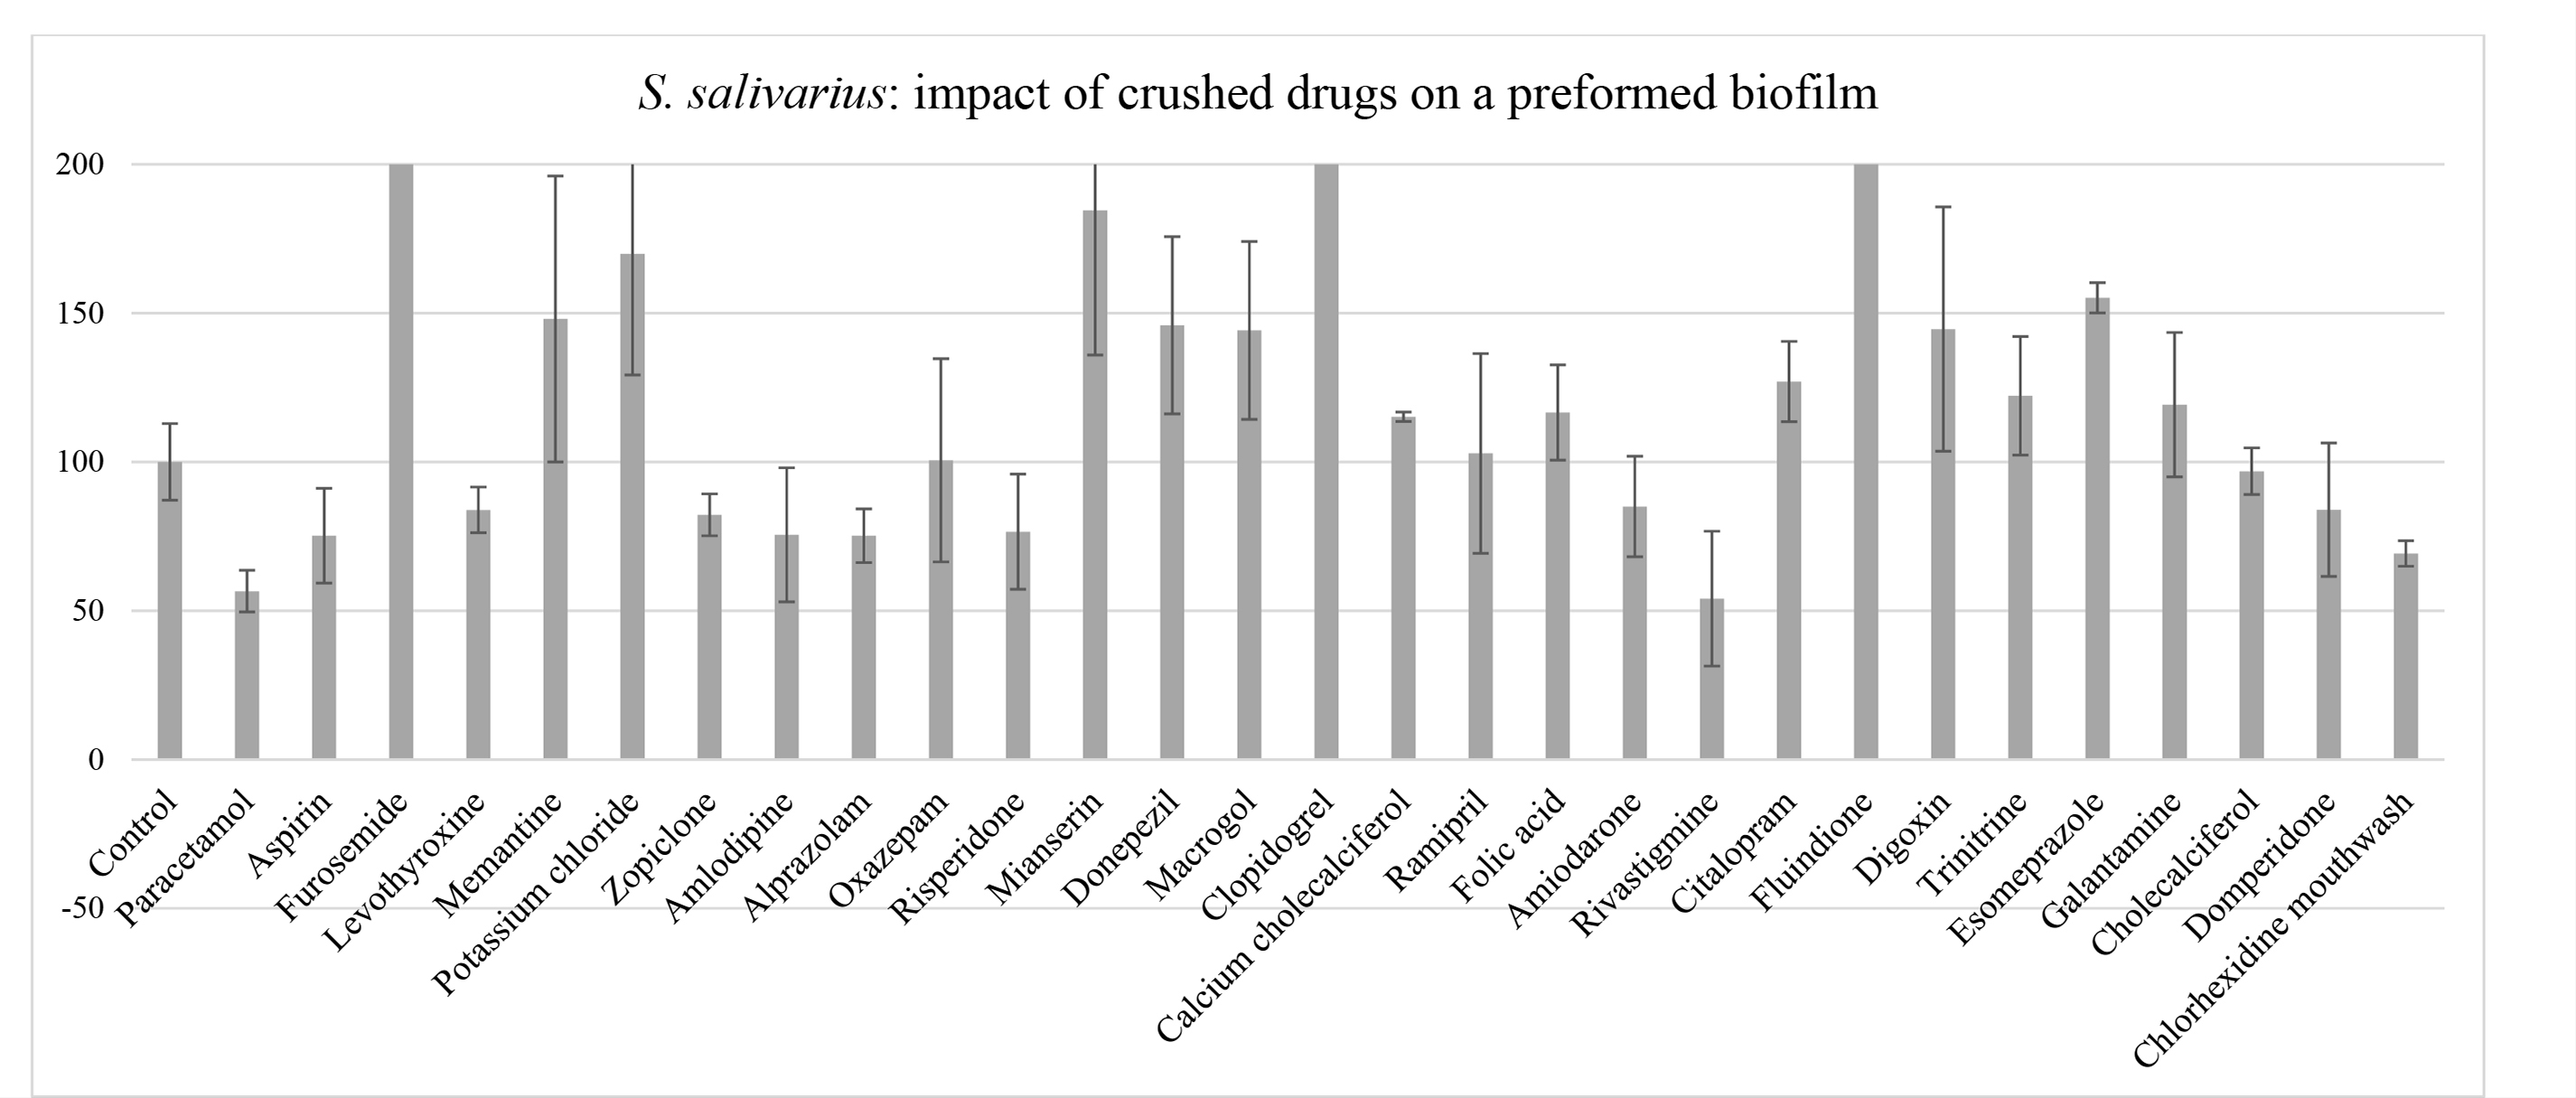 Anti-biofilm properties of drugs commonly prescribed in nursing homes, after 5-min contact: biomass reduction of a preformed Streptococcus salivarius biofilm grown for 48 hrs. Results are expressed as % biomass compared to control. Control: 100% of S. salivarius biomass (crystal violet) in a biofilm grown for 48 hrs without medication. Values >100% are attributed to an interaction between certain drugs and the crystal violet dye used to measure optical density.